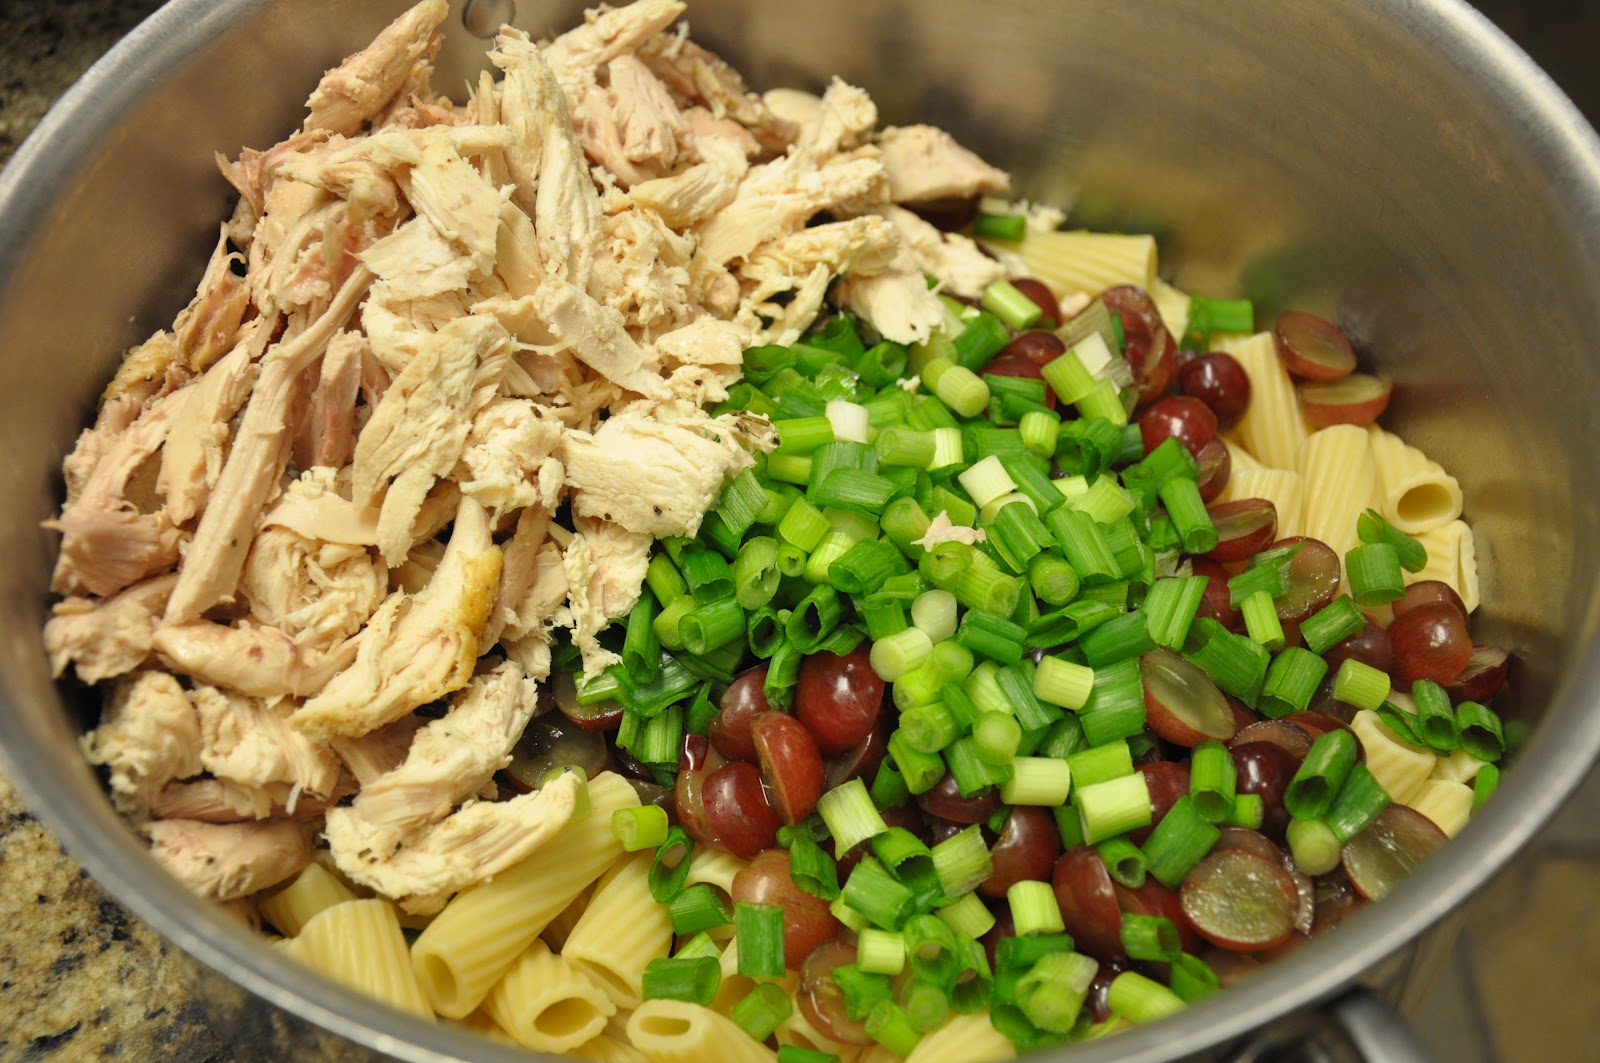 Redheadwhitefood tarragon chicken pasta salad with grapes and transfer cold noodles to a large bowl and add 1 whole bunch chopped green onions chilled shredded chicken from a rotisserie chicken careful to remove all forumfinder Choice Image